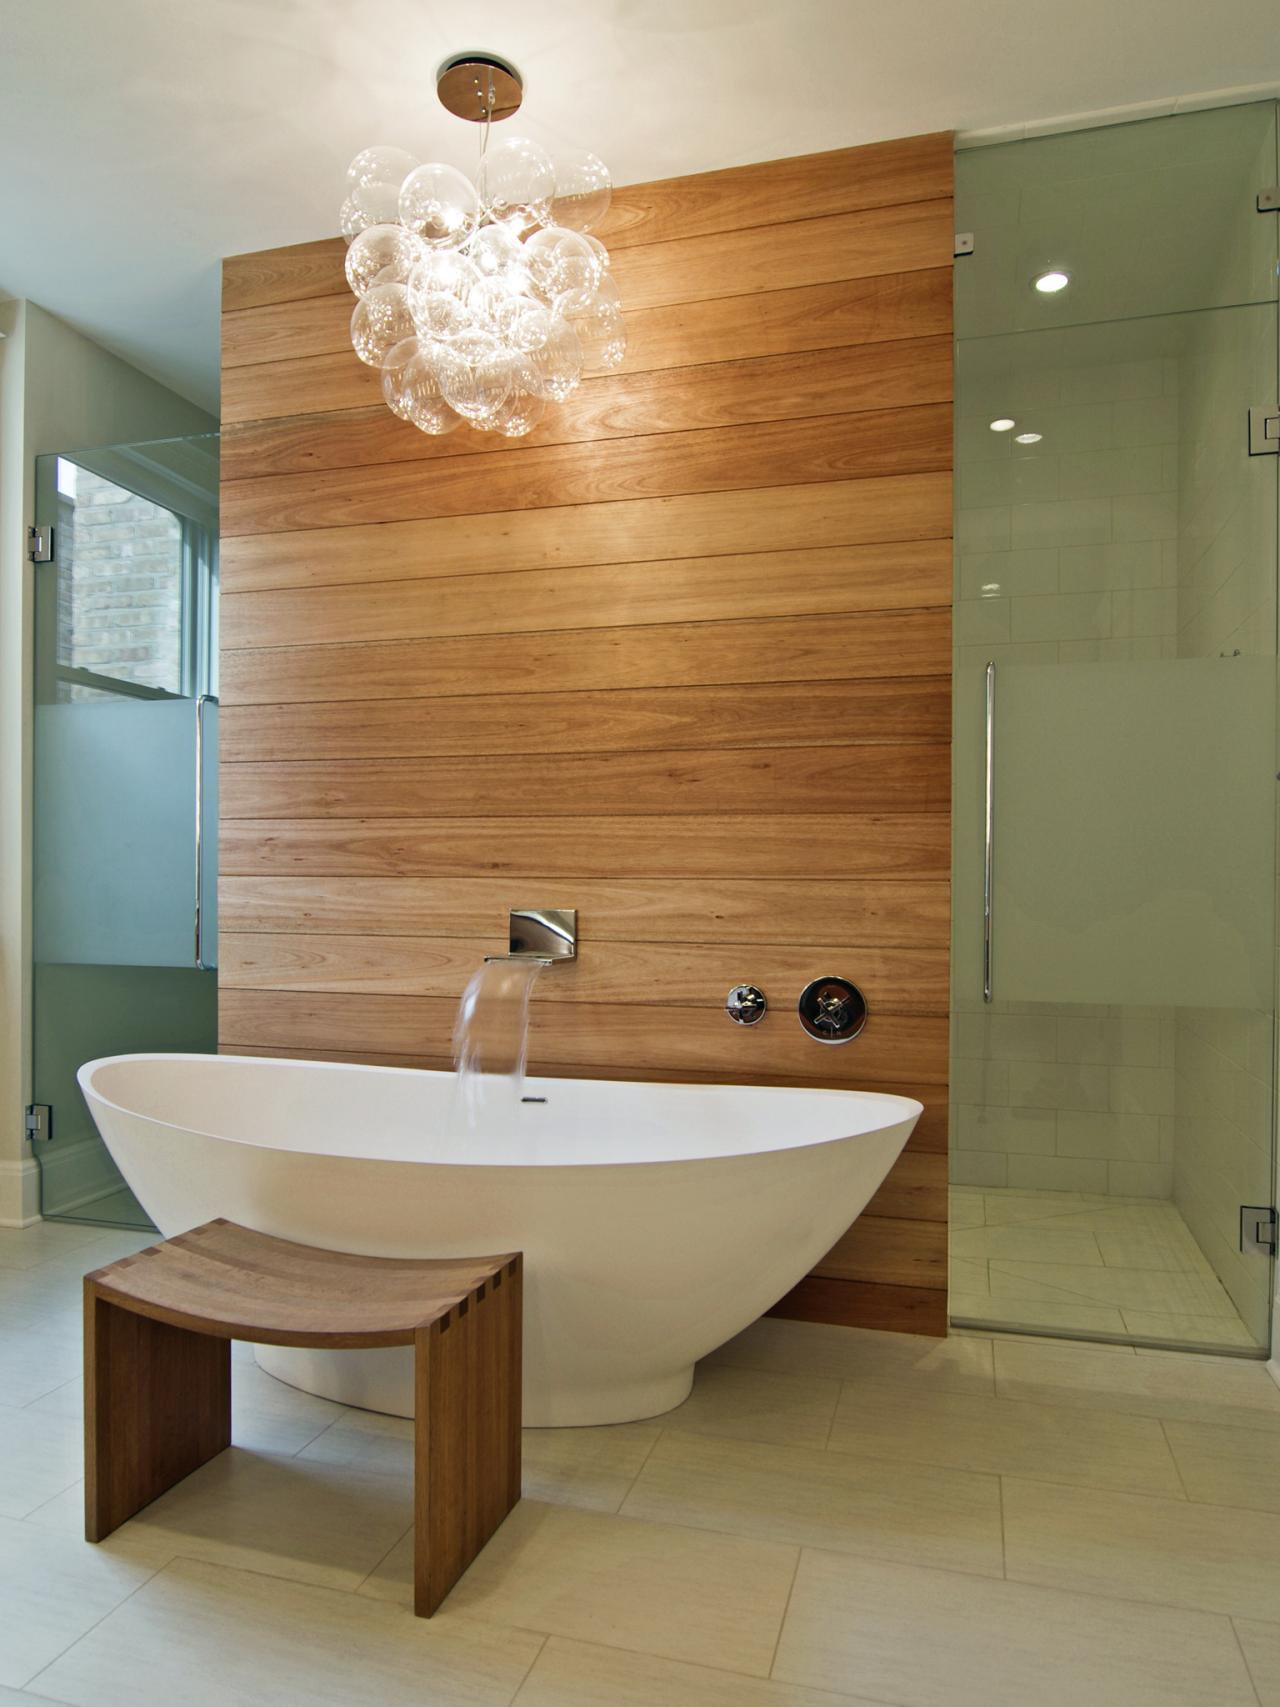 Contemporary Spa Bathroom With Freestanding Tub